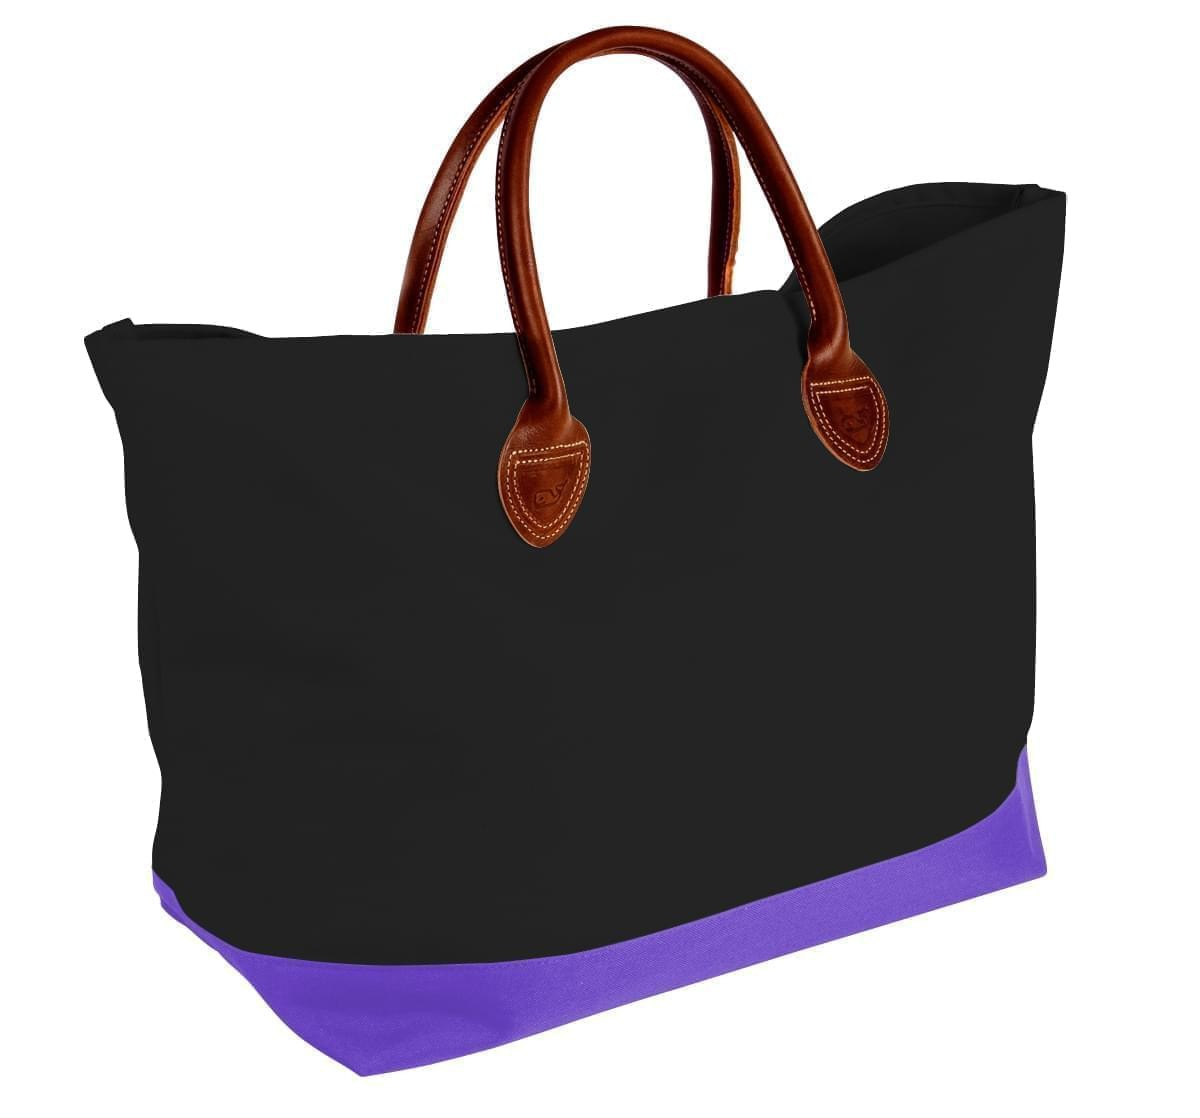 USA Made Canvas Leather Handle Totes, Black-Purple, 10899-KH9